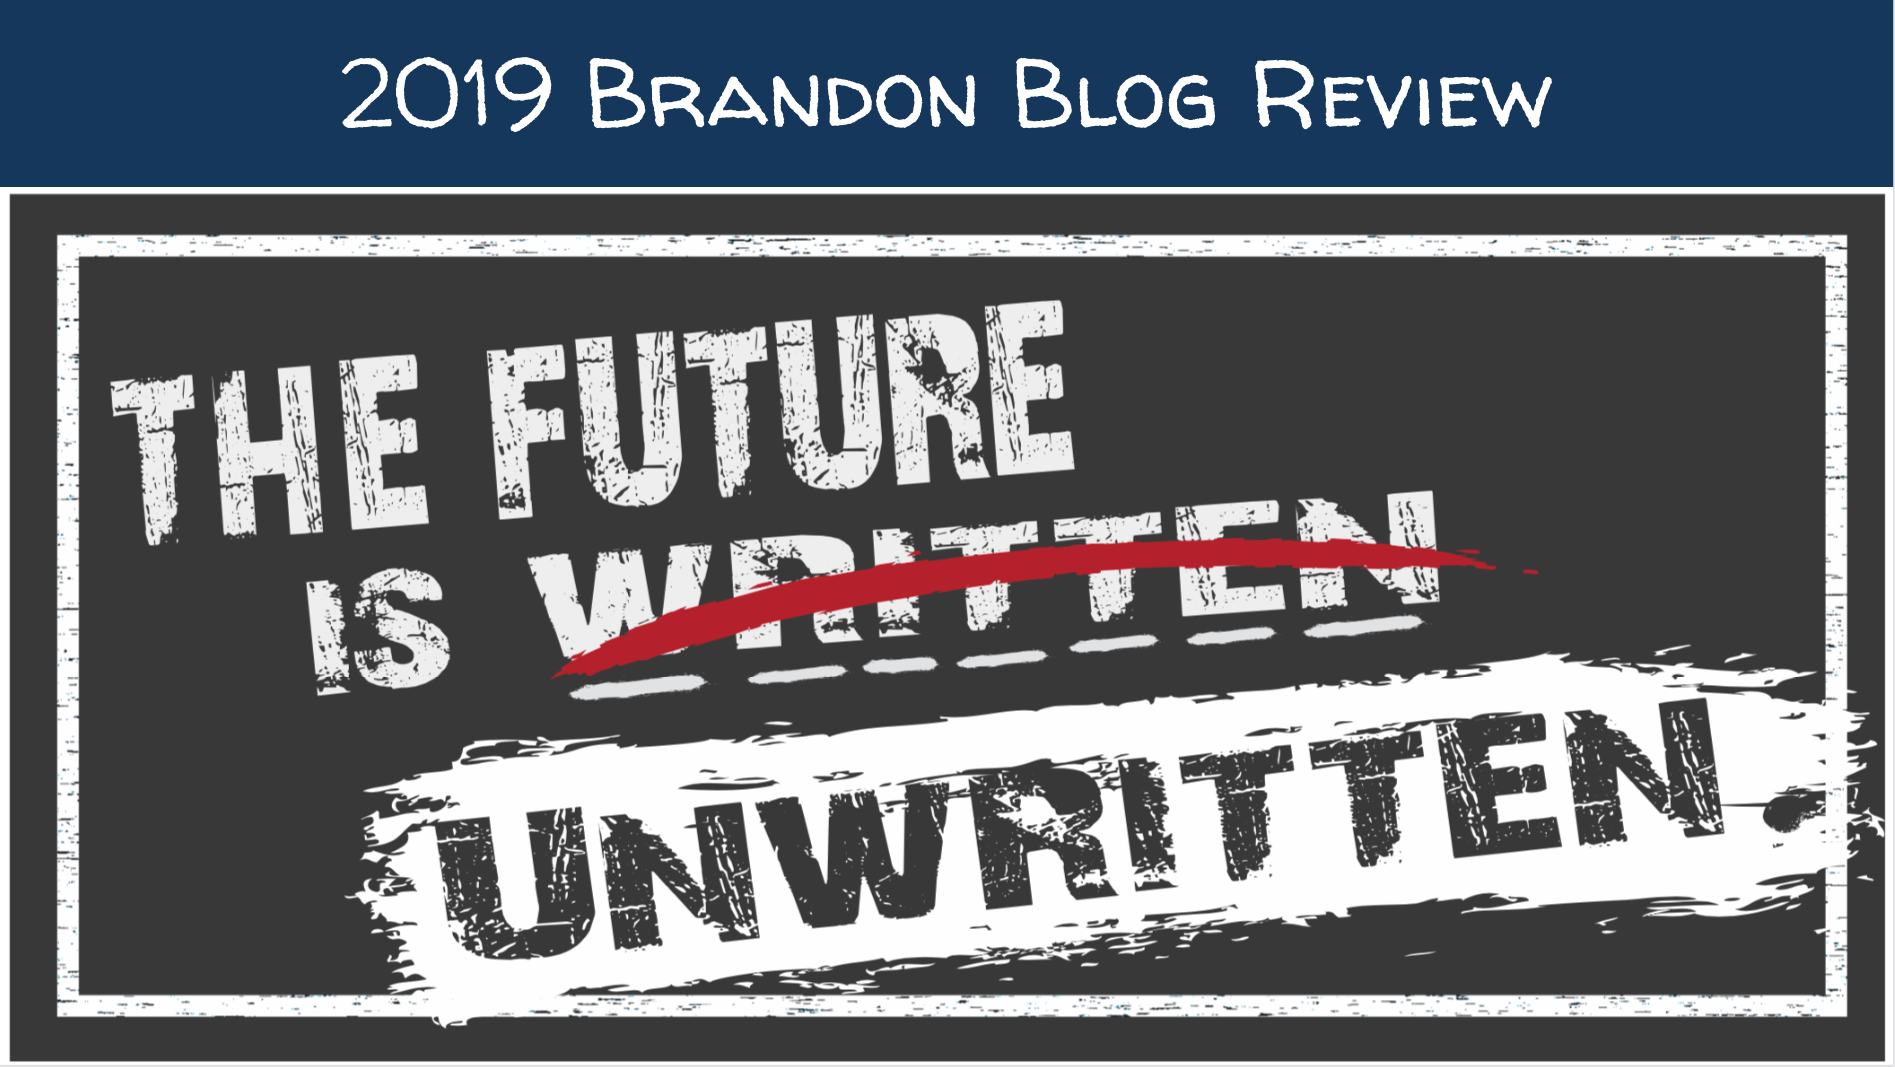 2019 Brandon Blog review